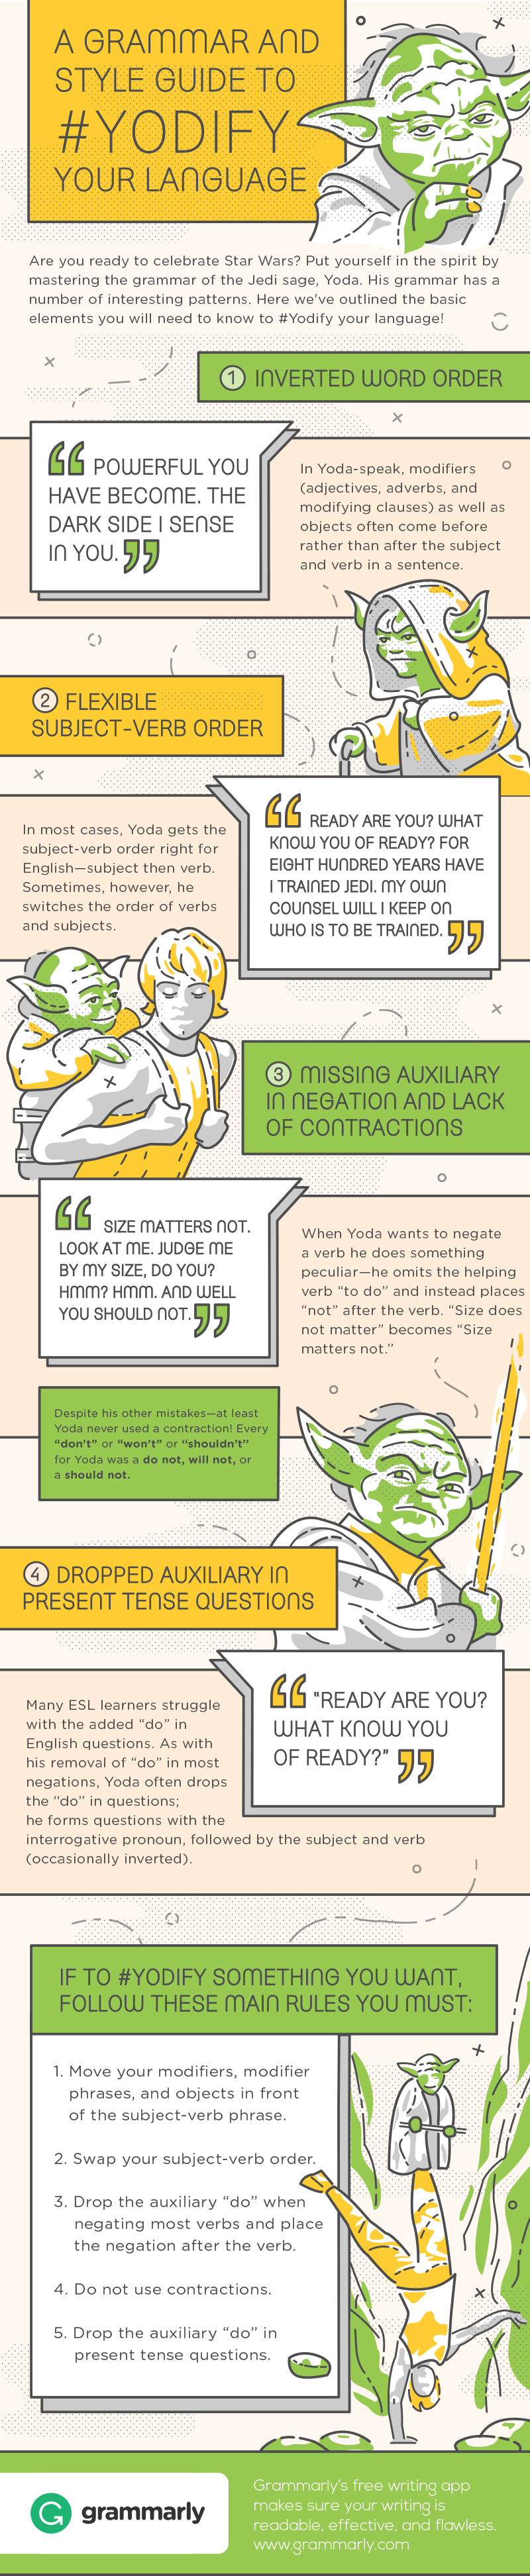 Yoda's language and grammar infographic, yodaspeak